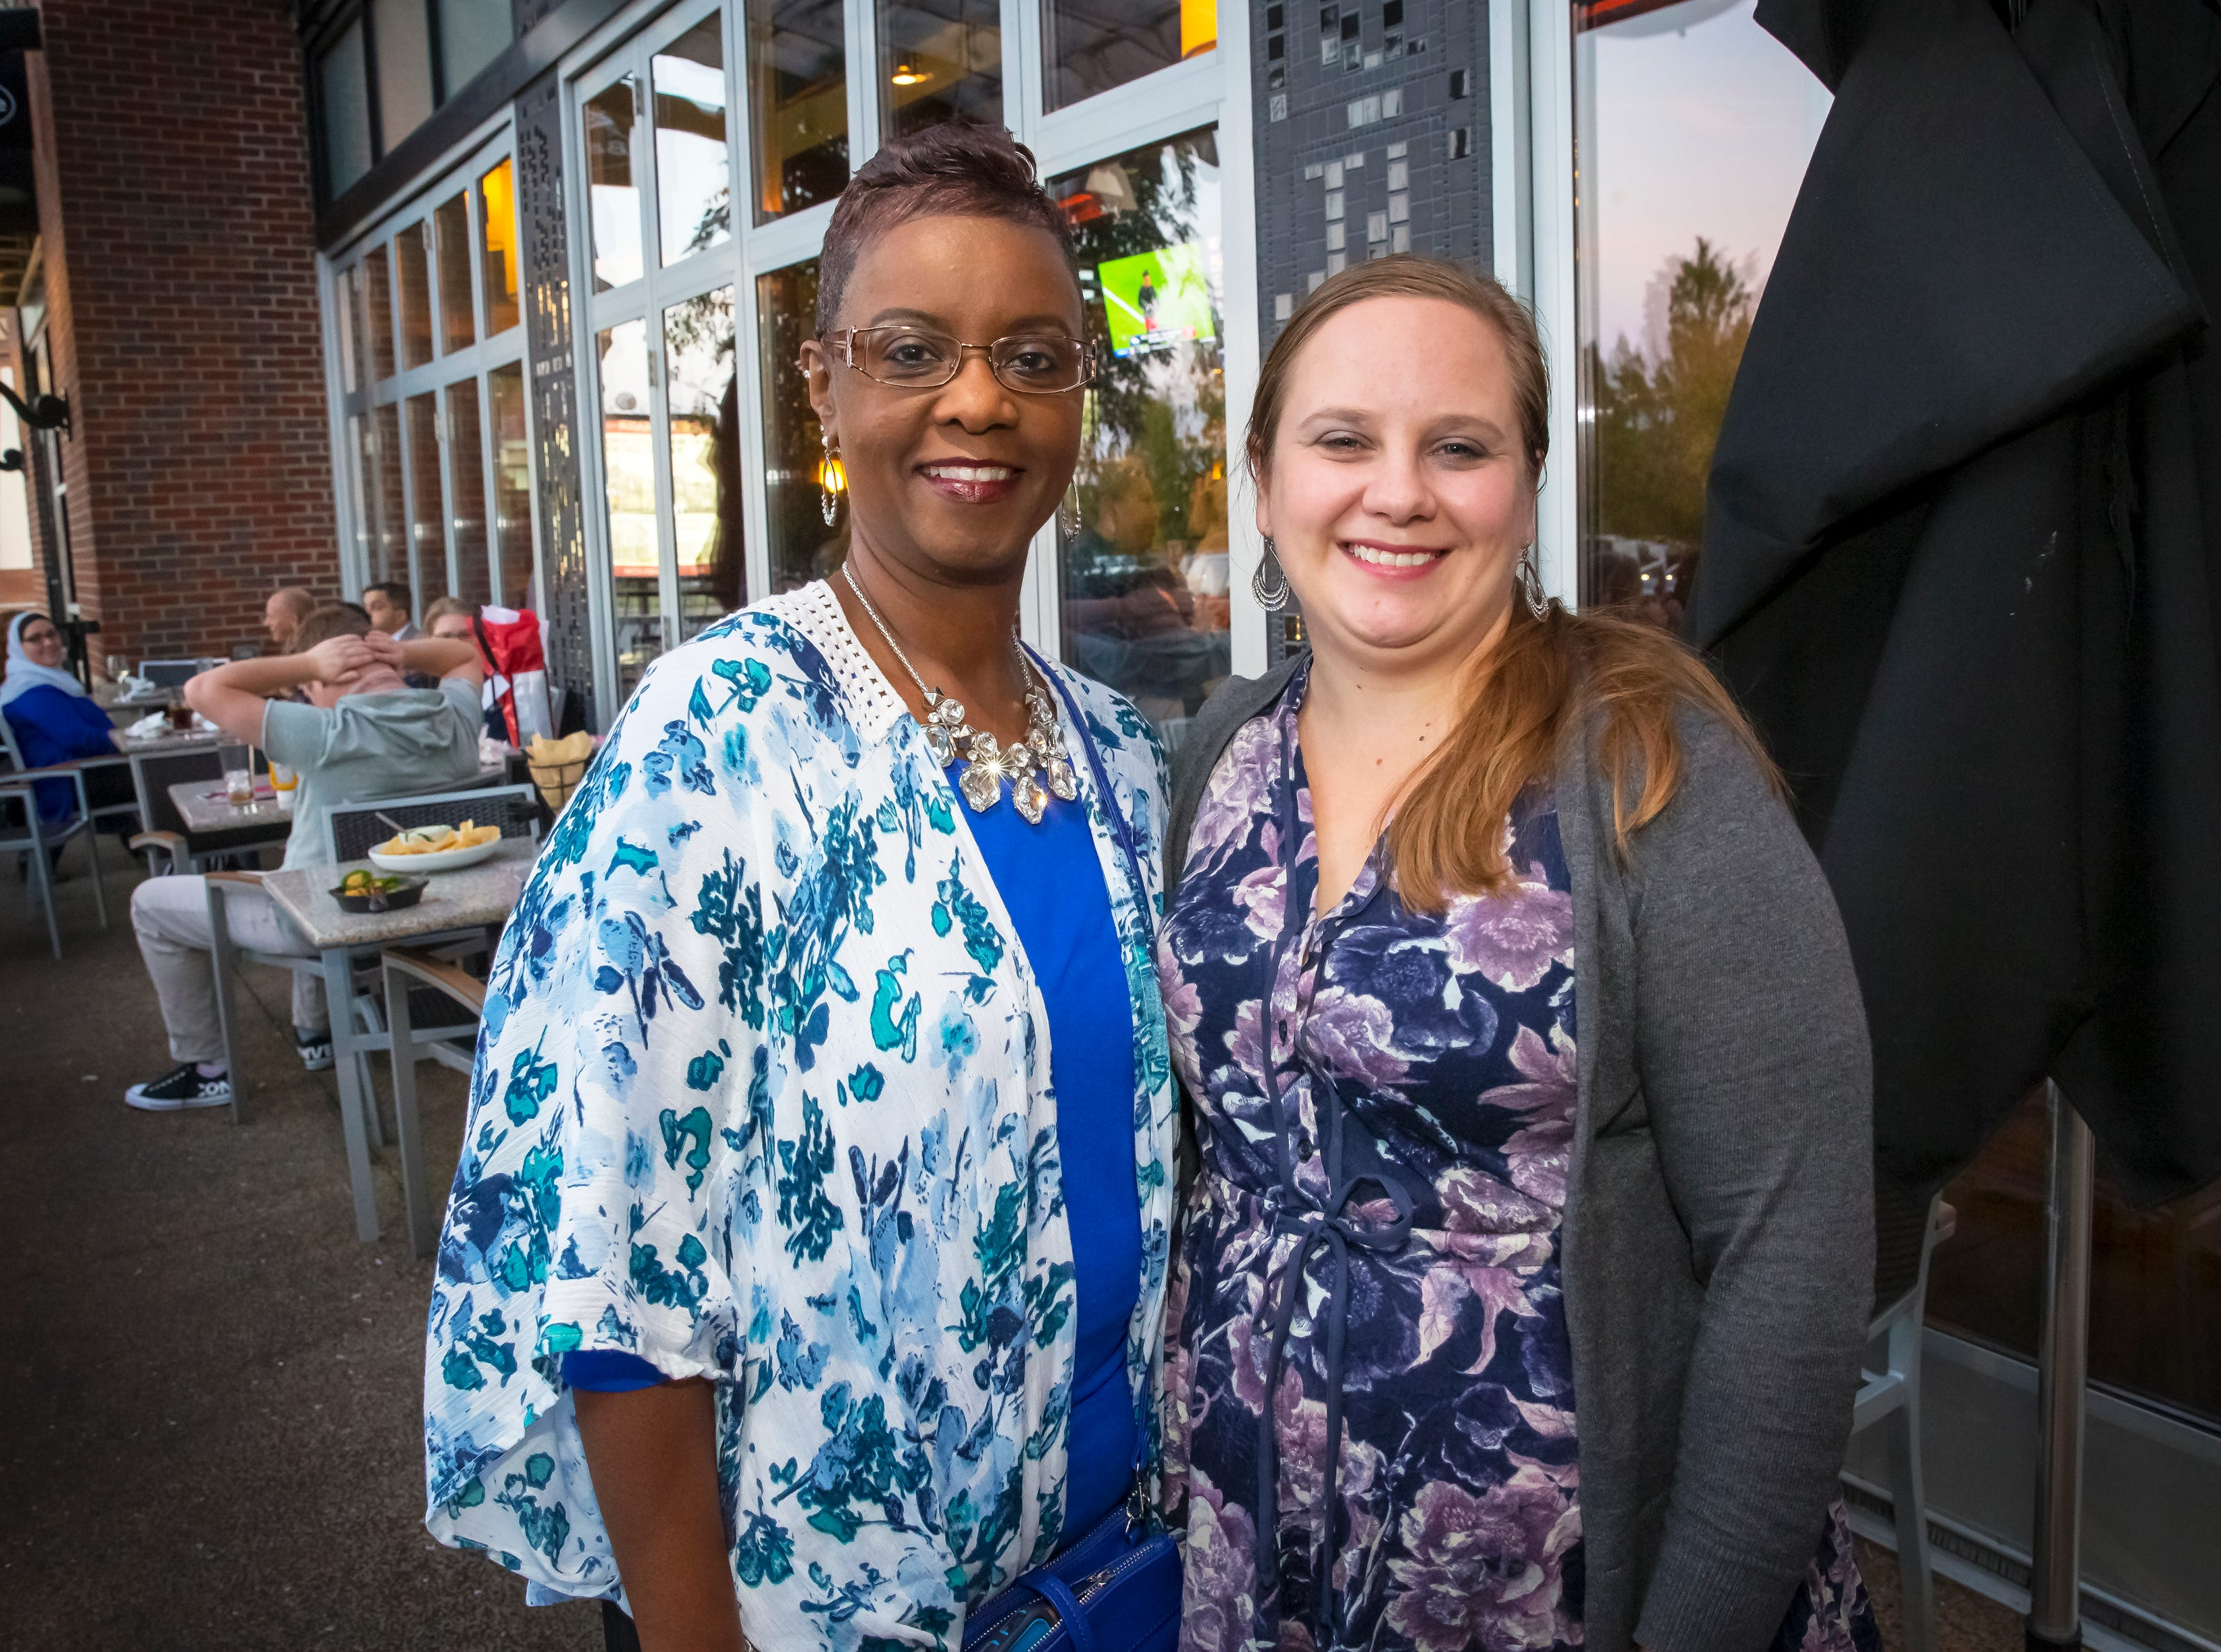 Kezkyn Sellars and Sarah Clark at the Murfreesboro Magazine Most Beautiful People event held at Bar Louie.